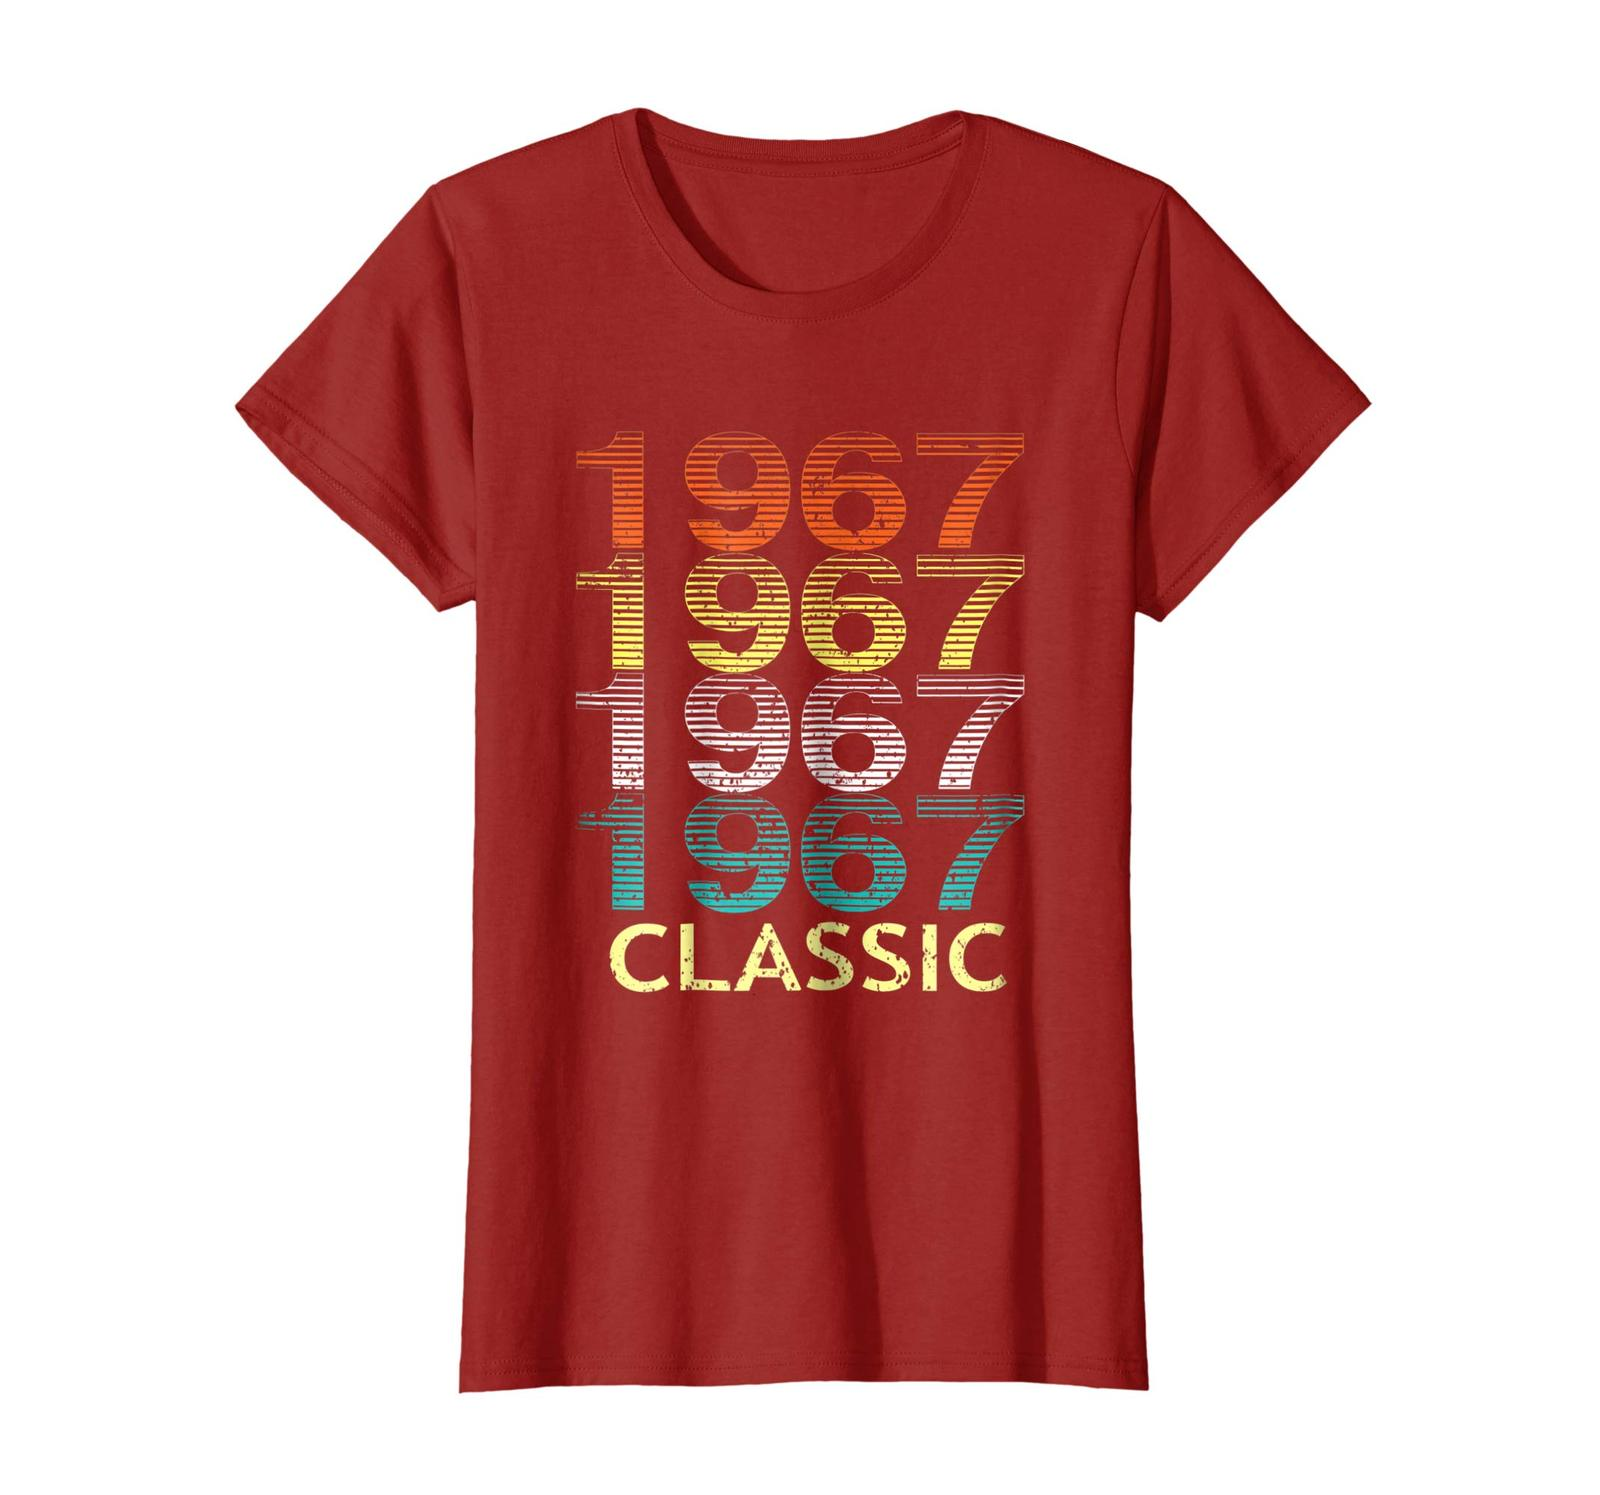 Uncle Shirts -   Vintage Classic 1967 Shirt 51st Birthday Gifts For Men Women Wo